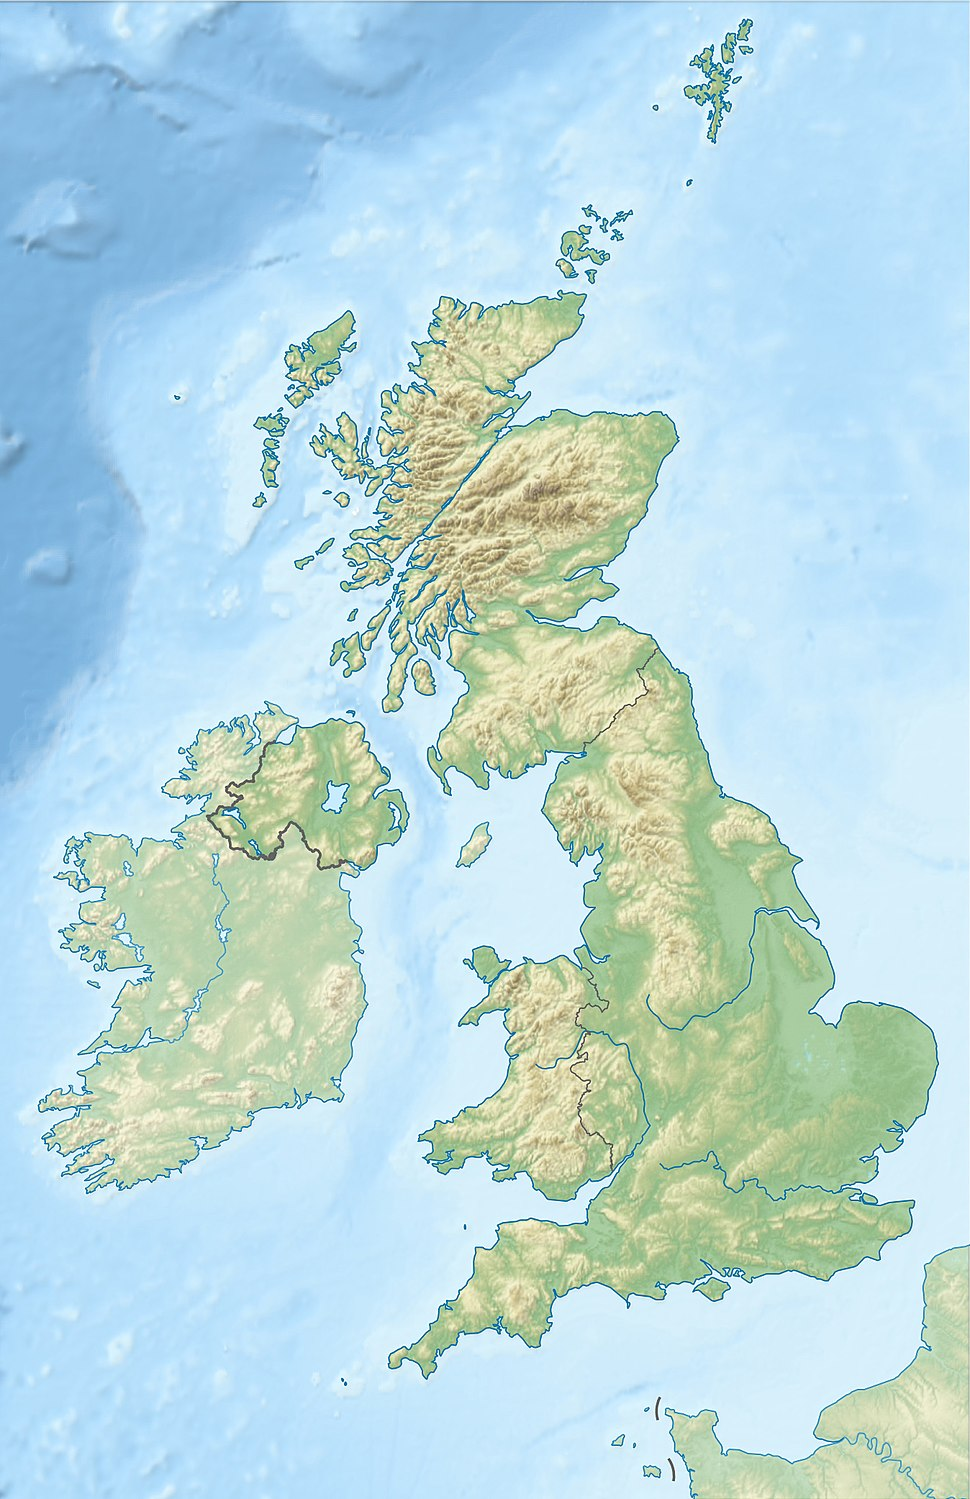 Edinburgh is located in the United Kingdom